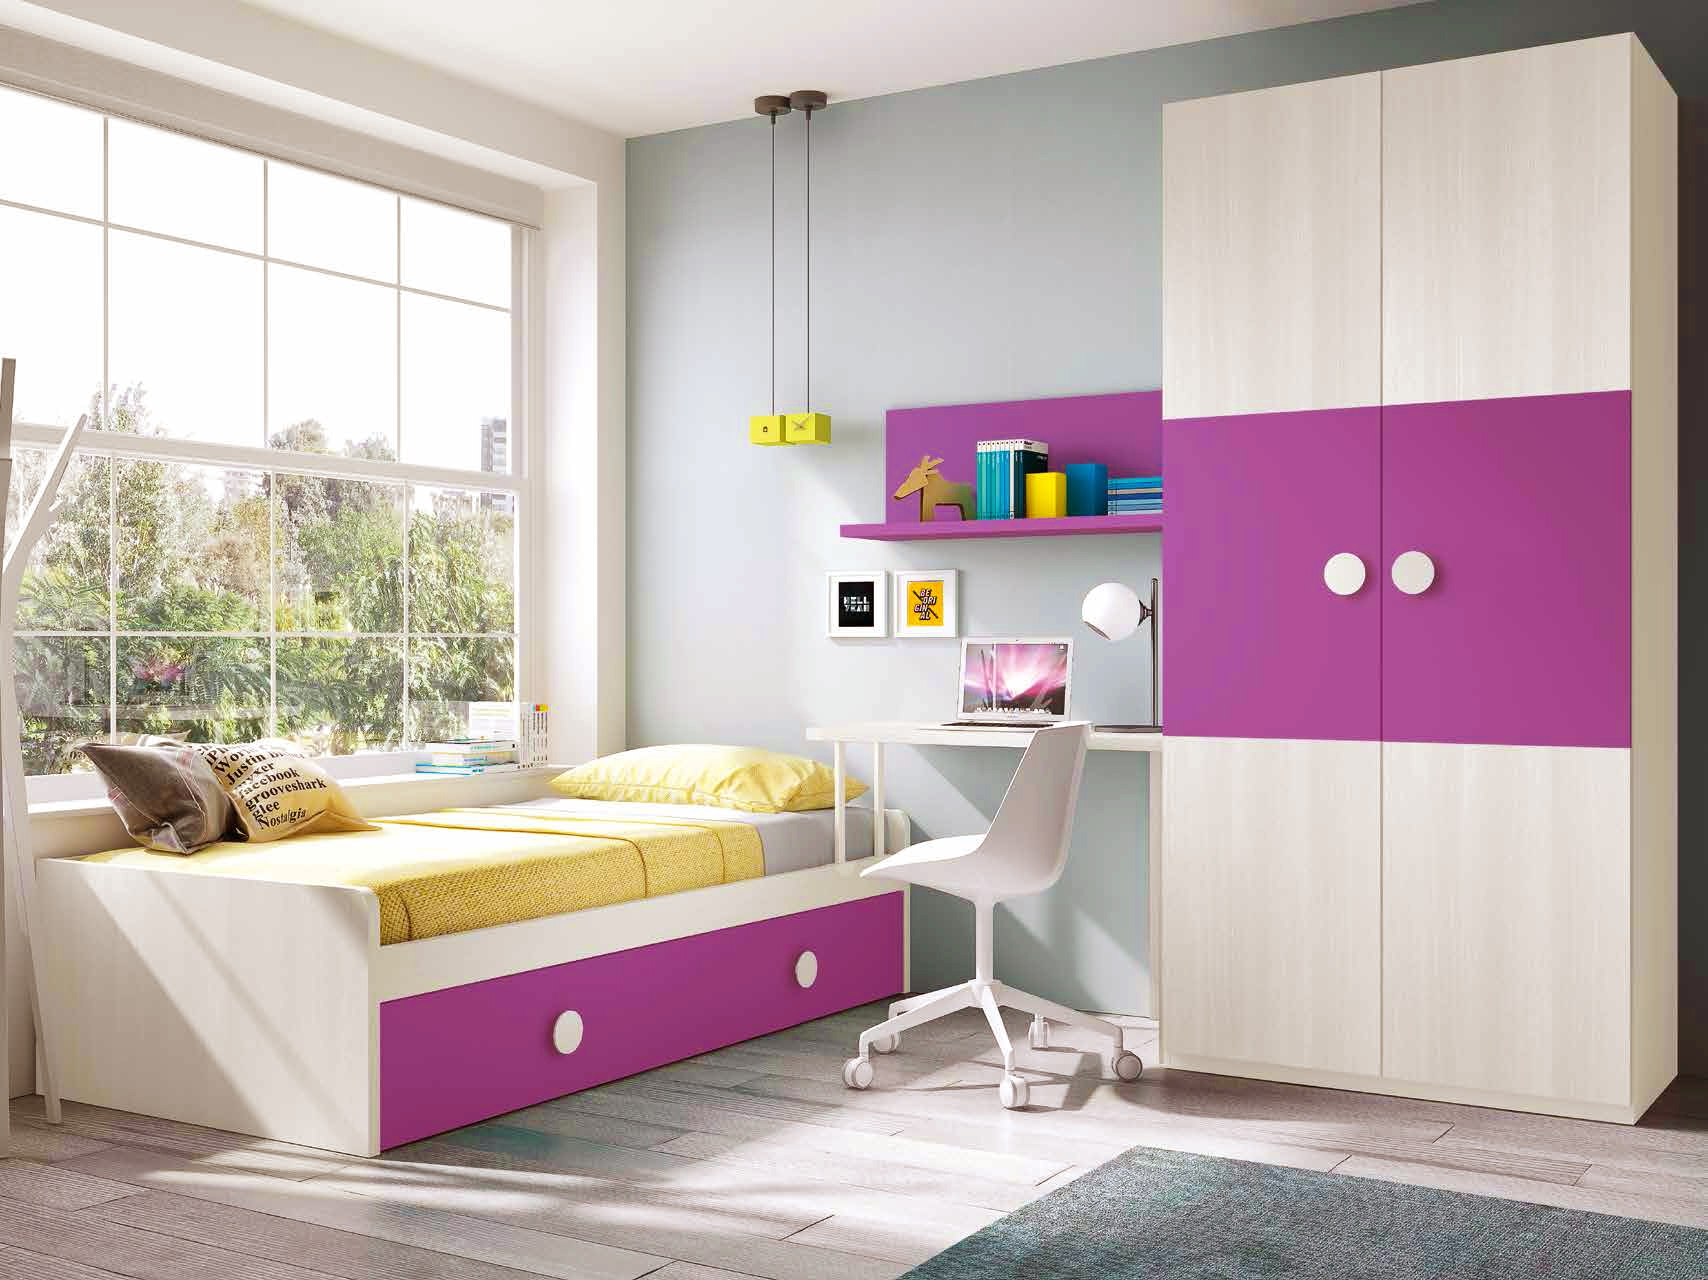 chambre compl te fille fruit e et fun glicerio so nuit. Black Bedroom Furniture Sets. Home Design Ideas